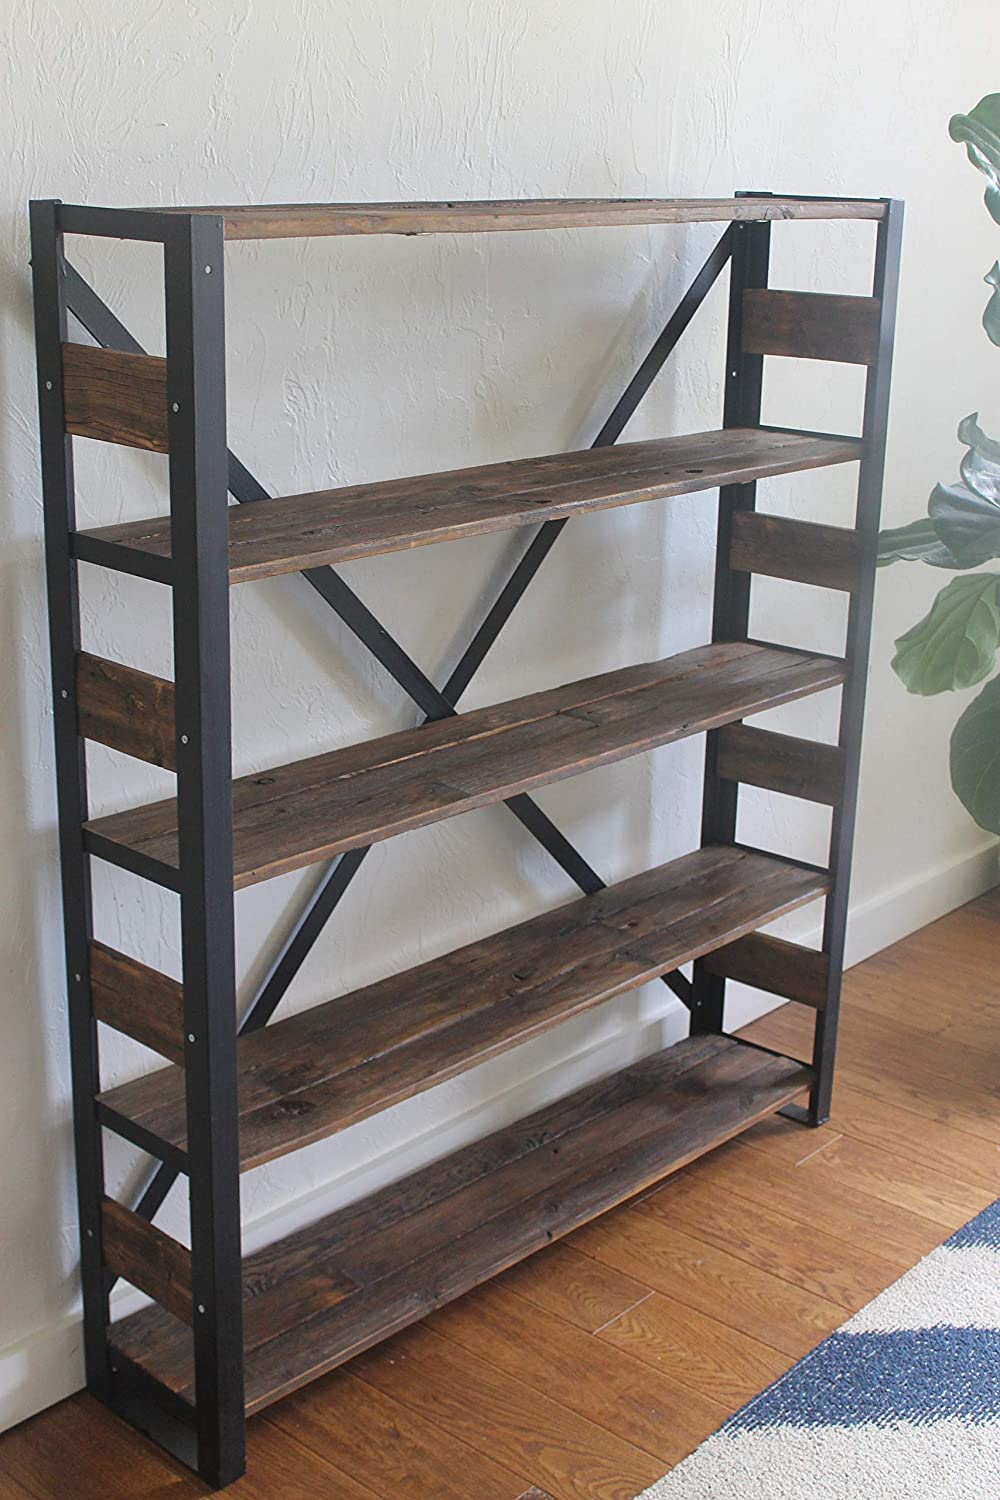 Reclaimed Wood Bookcase, Storage Shelves, Book